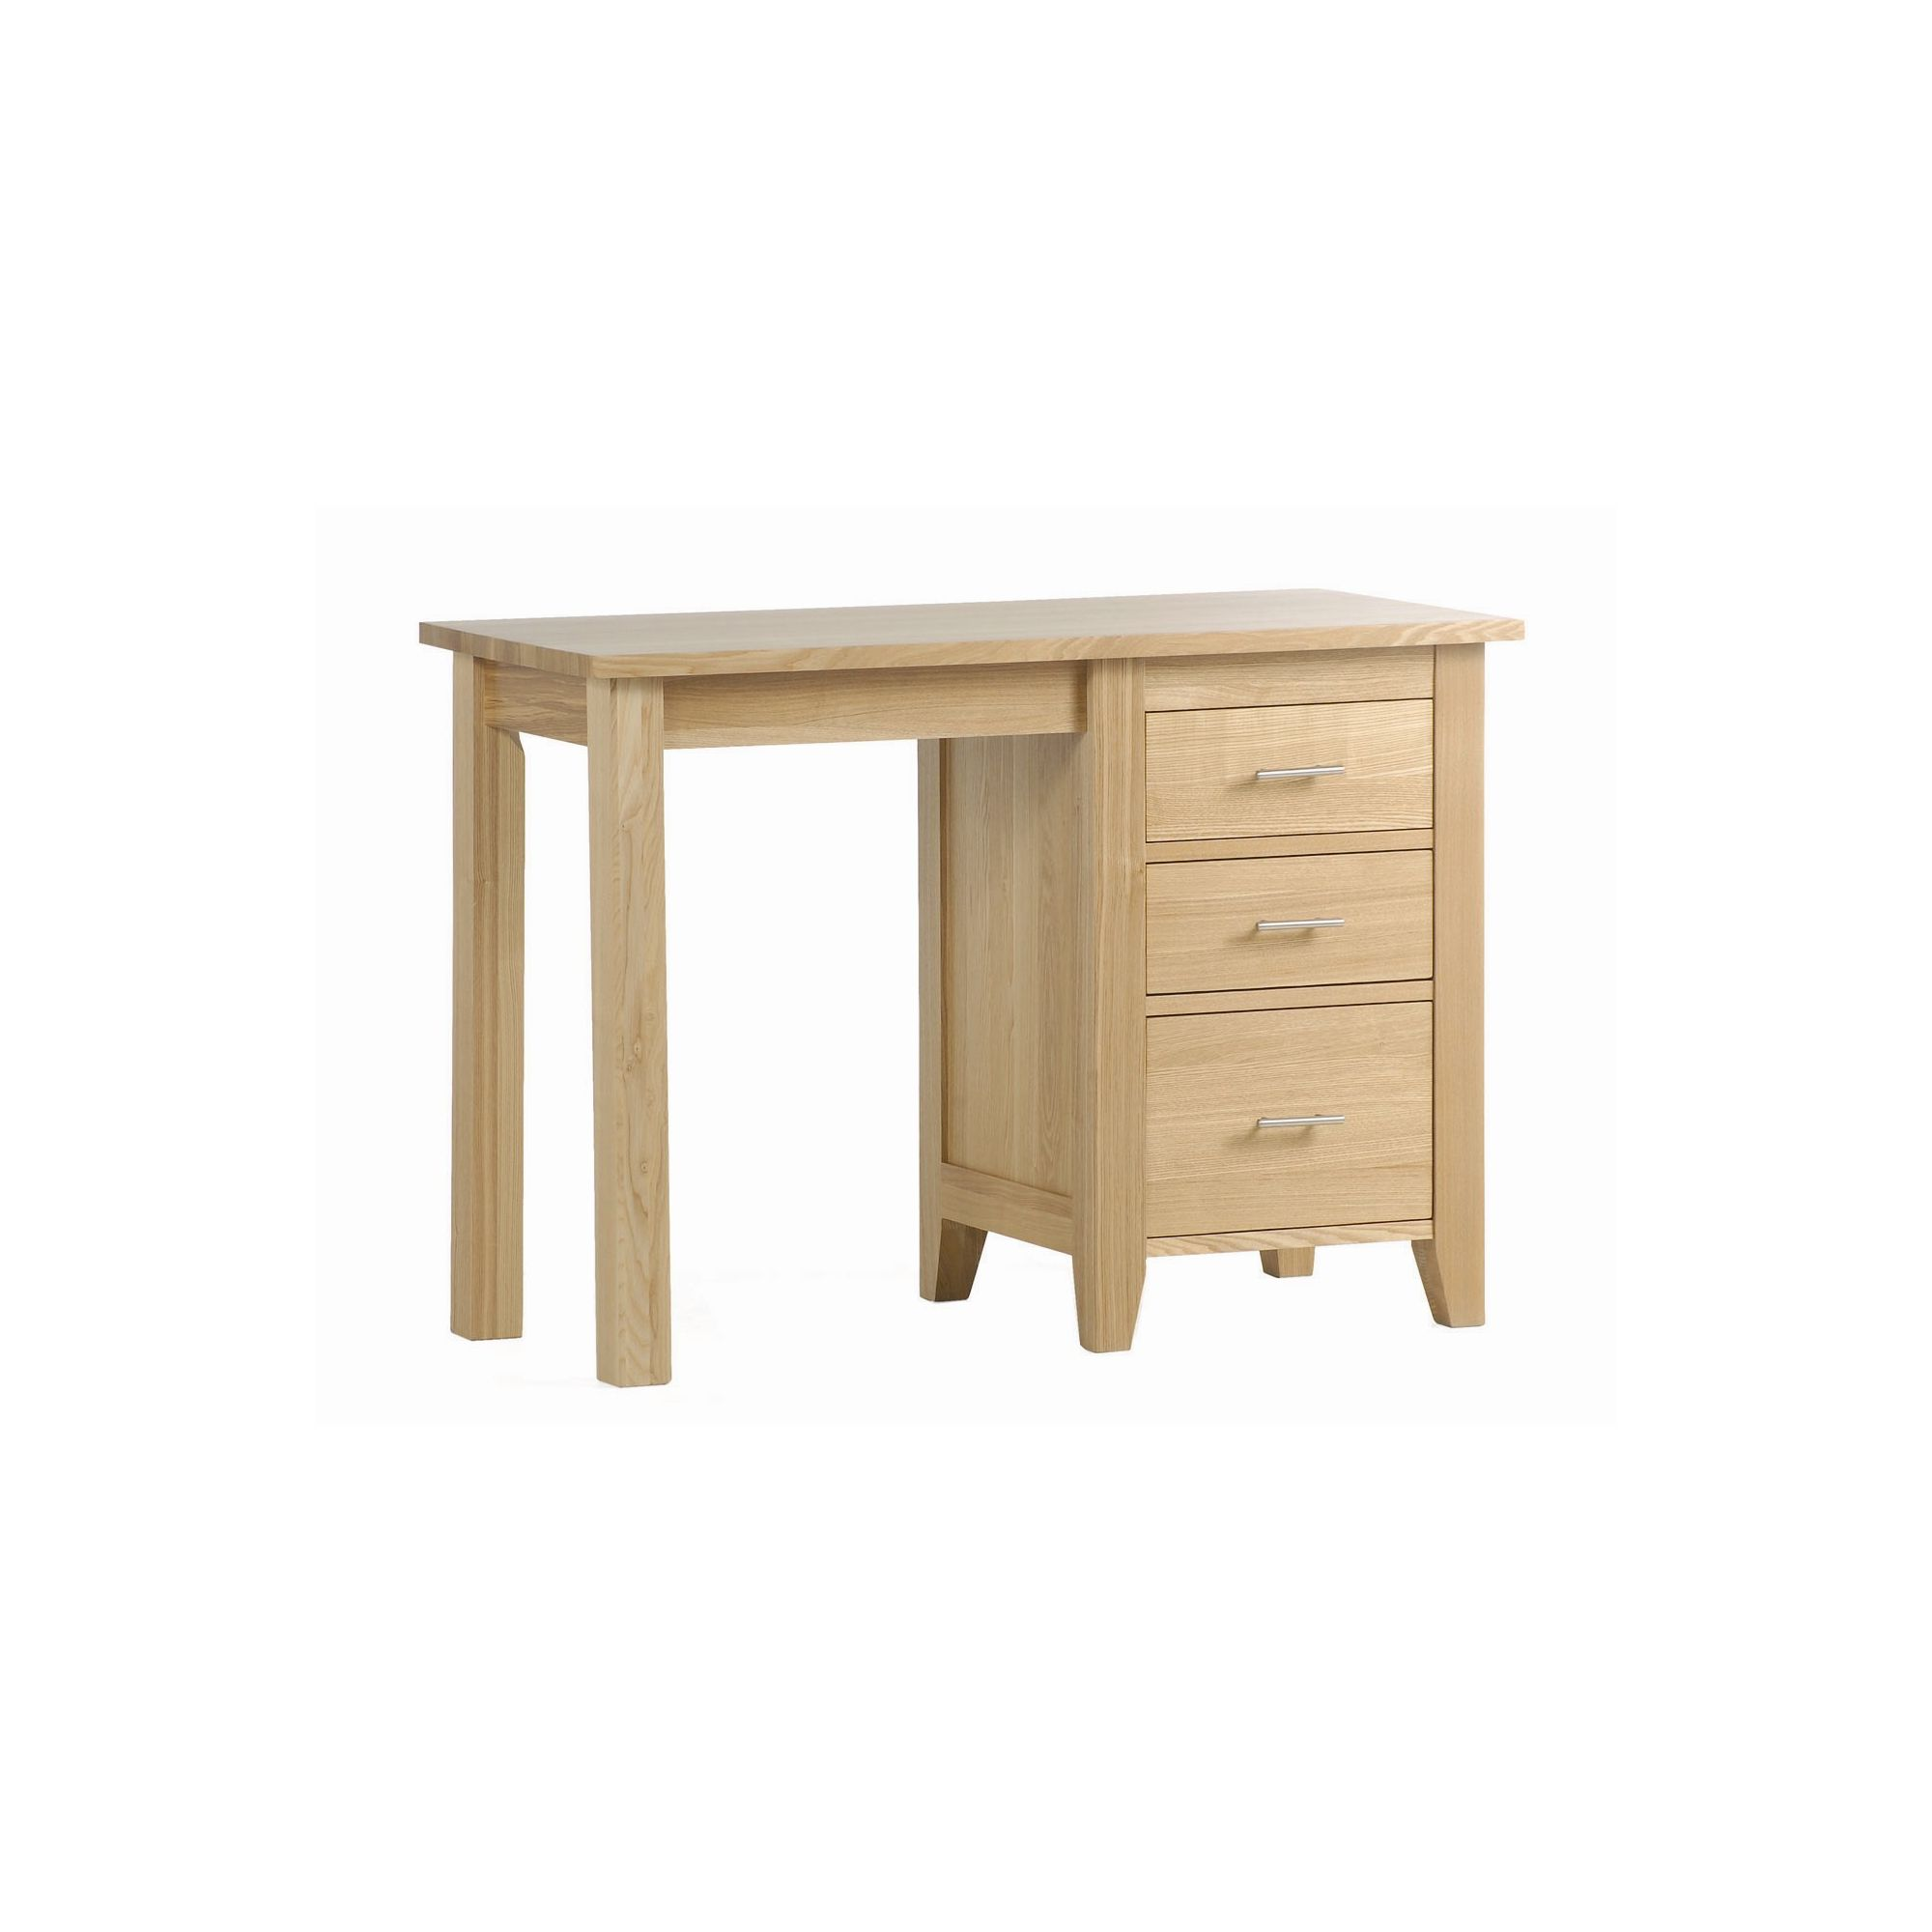 Kelburn Furniture Carlton Ash Single Pedestal Desk at Tesco Direct